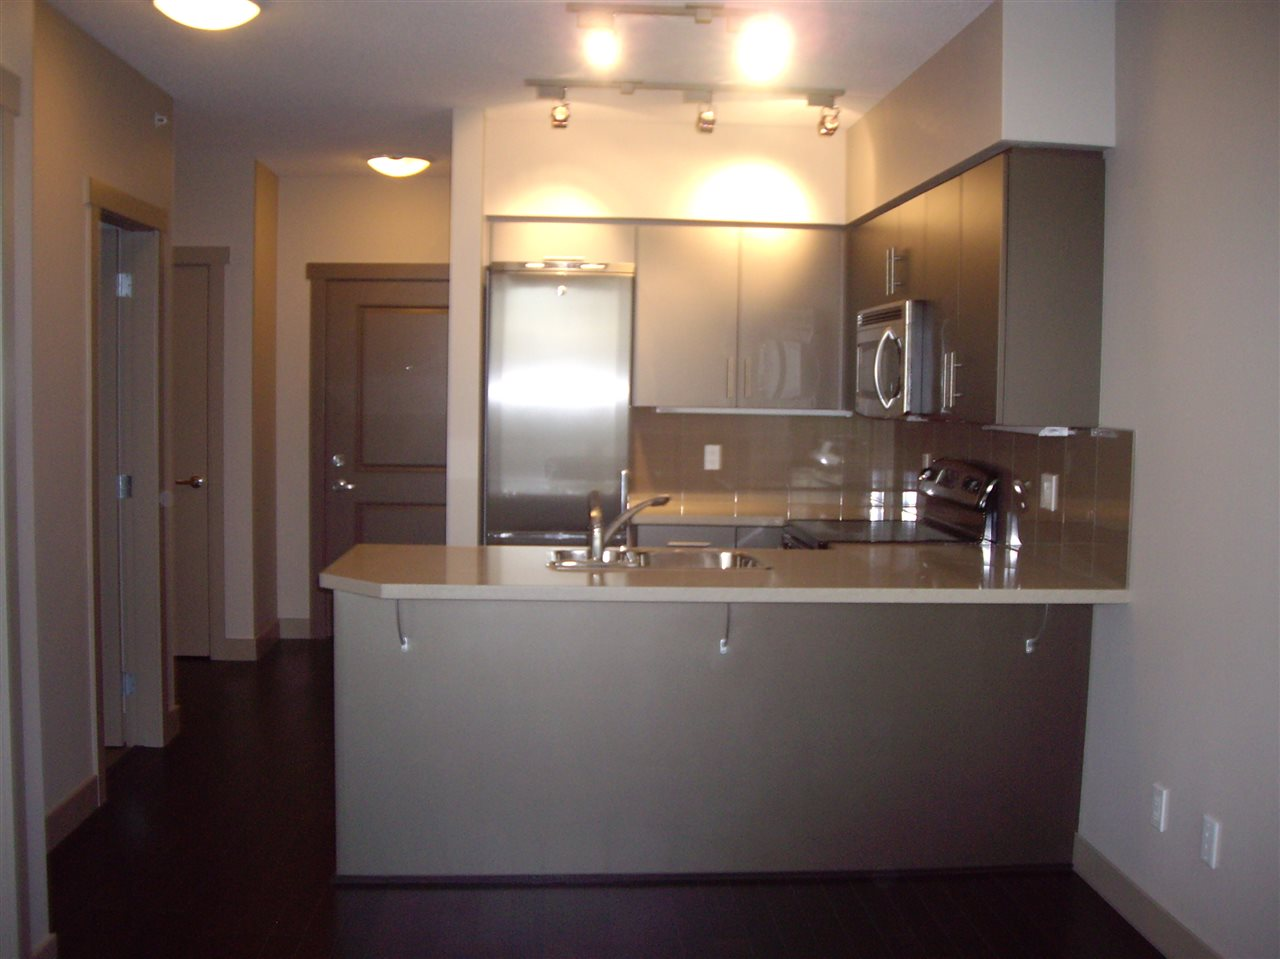 Here is your opportunity! South facing large 1 bedroom unit with den. Includes 1 parking stall and storage locker. Currently tenanted on month to month agreement. This unit is steps away from restaurants, banking, schools and transit. For your convenience Nesters Market is located within the same building on the main level! This is a great unit to live in or rent out as an investment! The unit has it all: quartz countertops, garden patio, too many features to list! Please note that unit is currently furnished with tenant belongings. Fridge has been replaced and is different from fridge shown in pictures.  First Showing on Sunday, November 12, 2017.